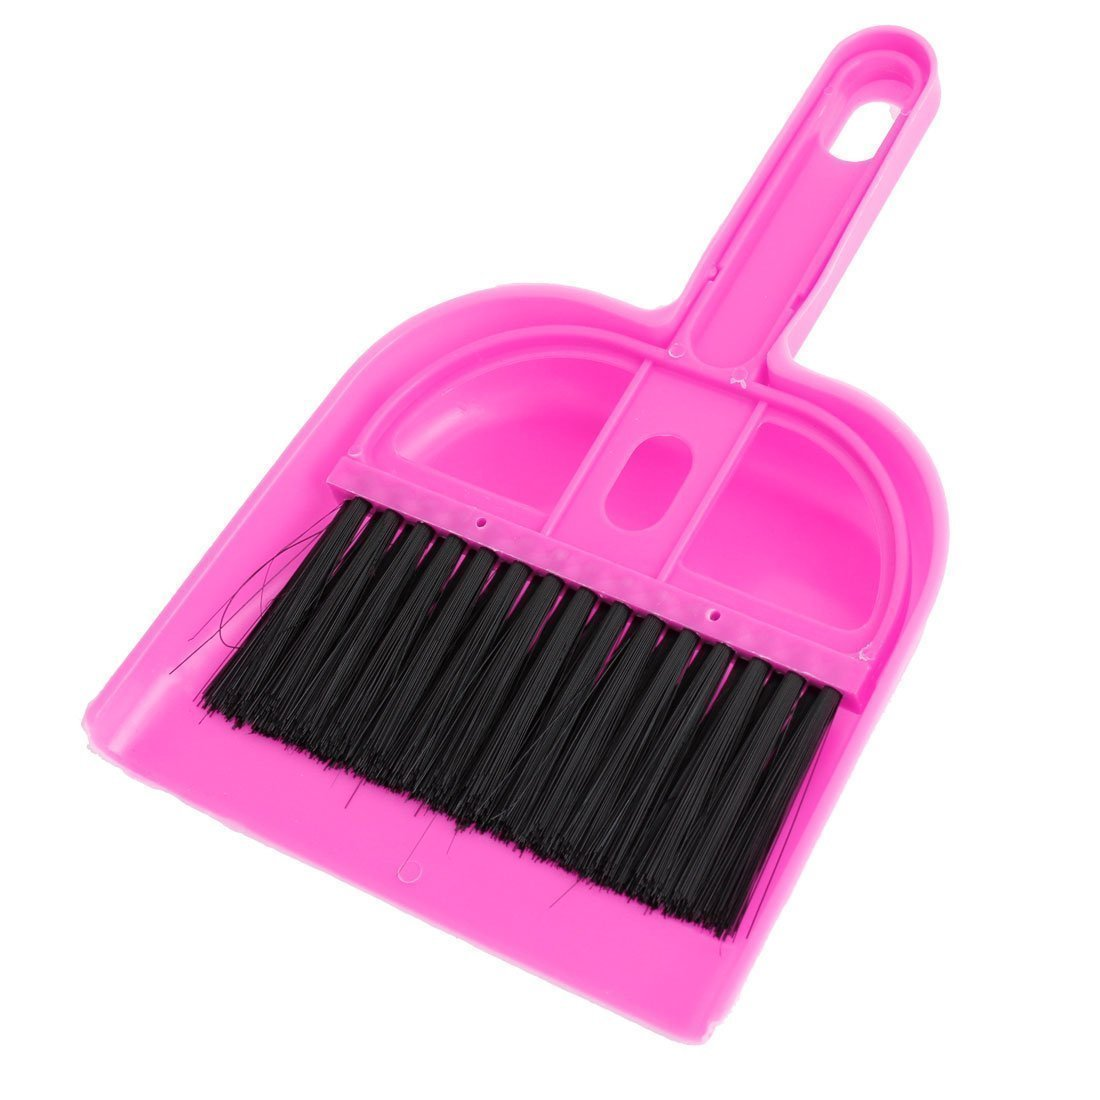 Home Mart Mini Computer Cleaning Brush Set Keyboard Brush Broom Office Home Desktop Clean Tools